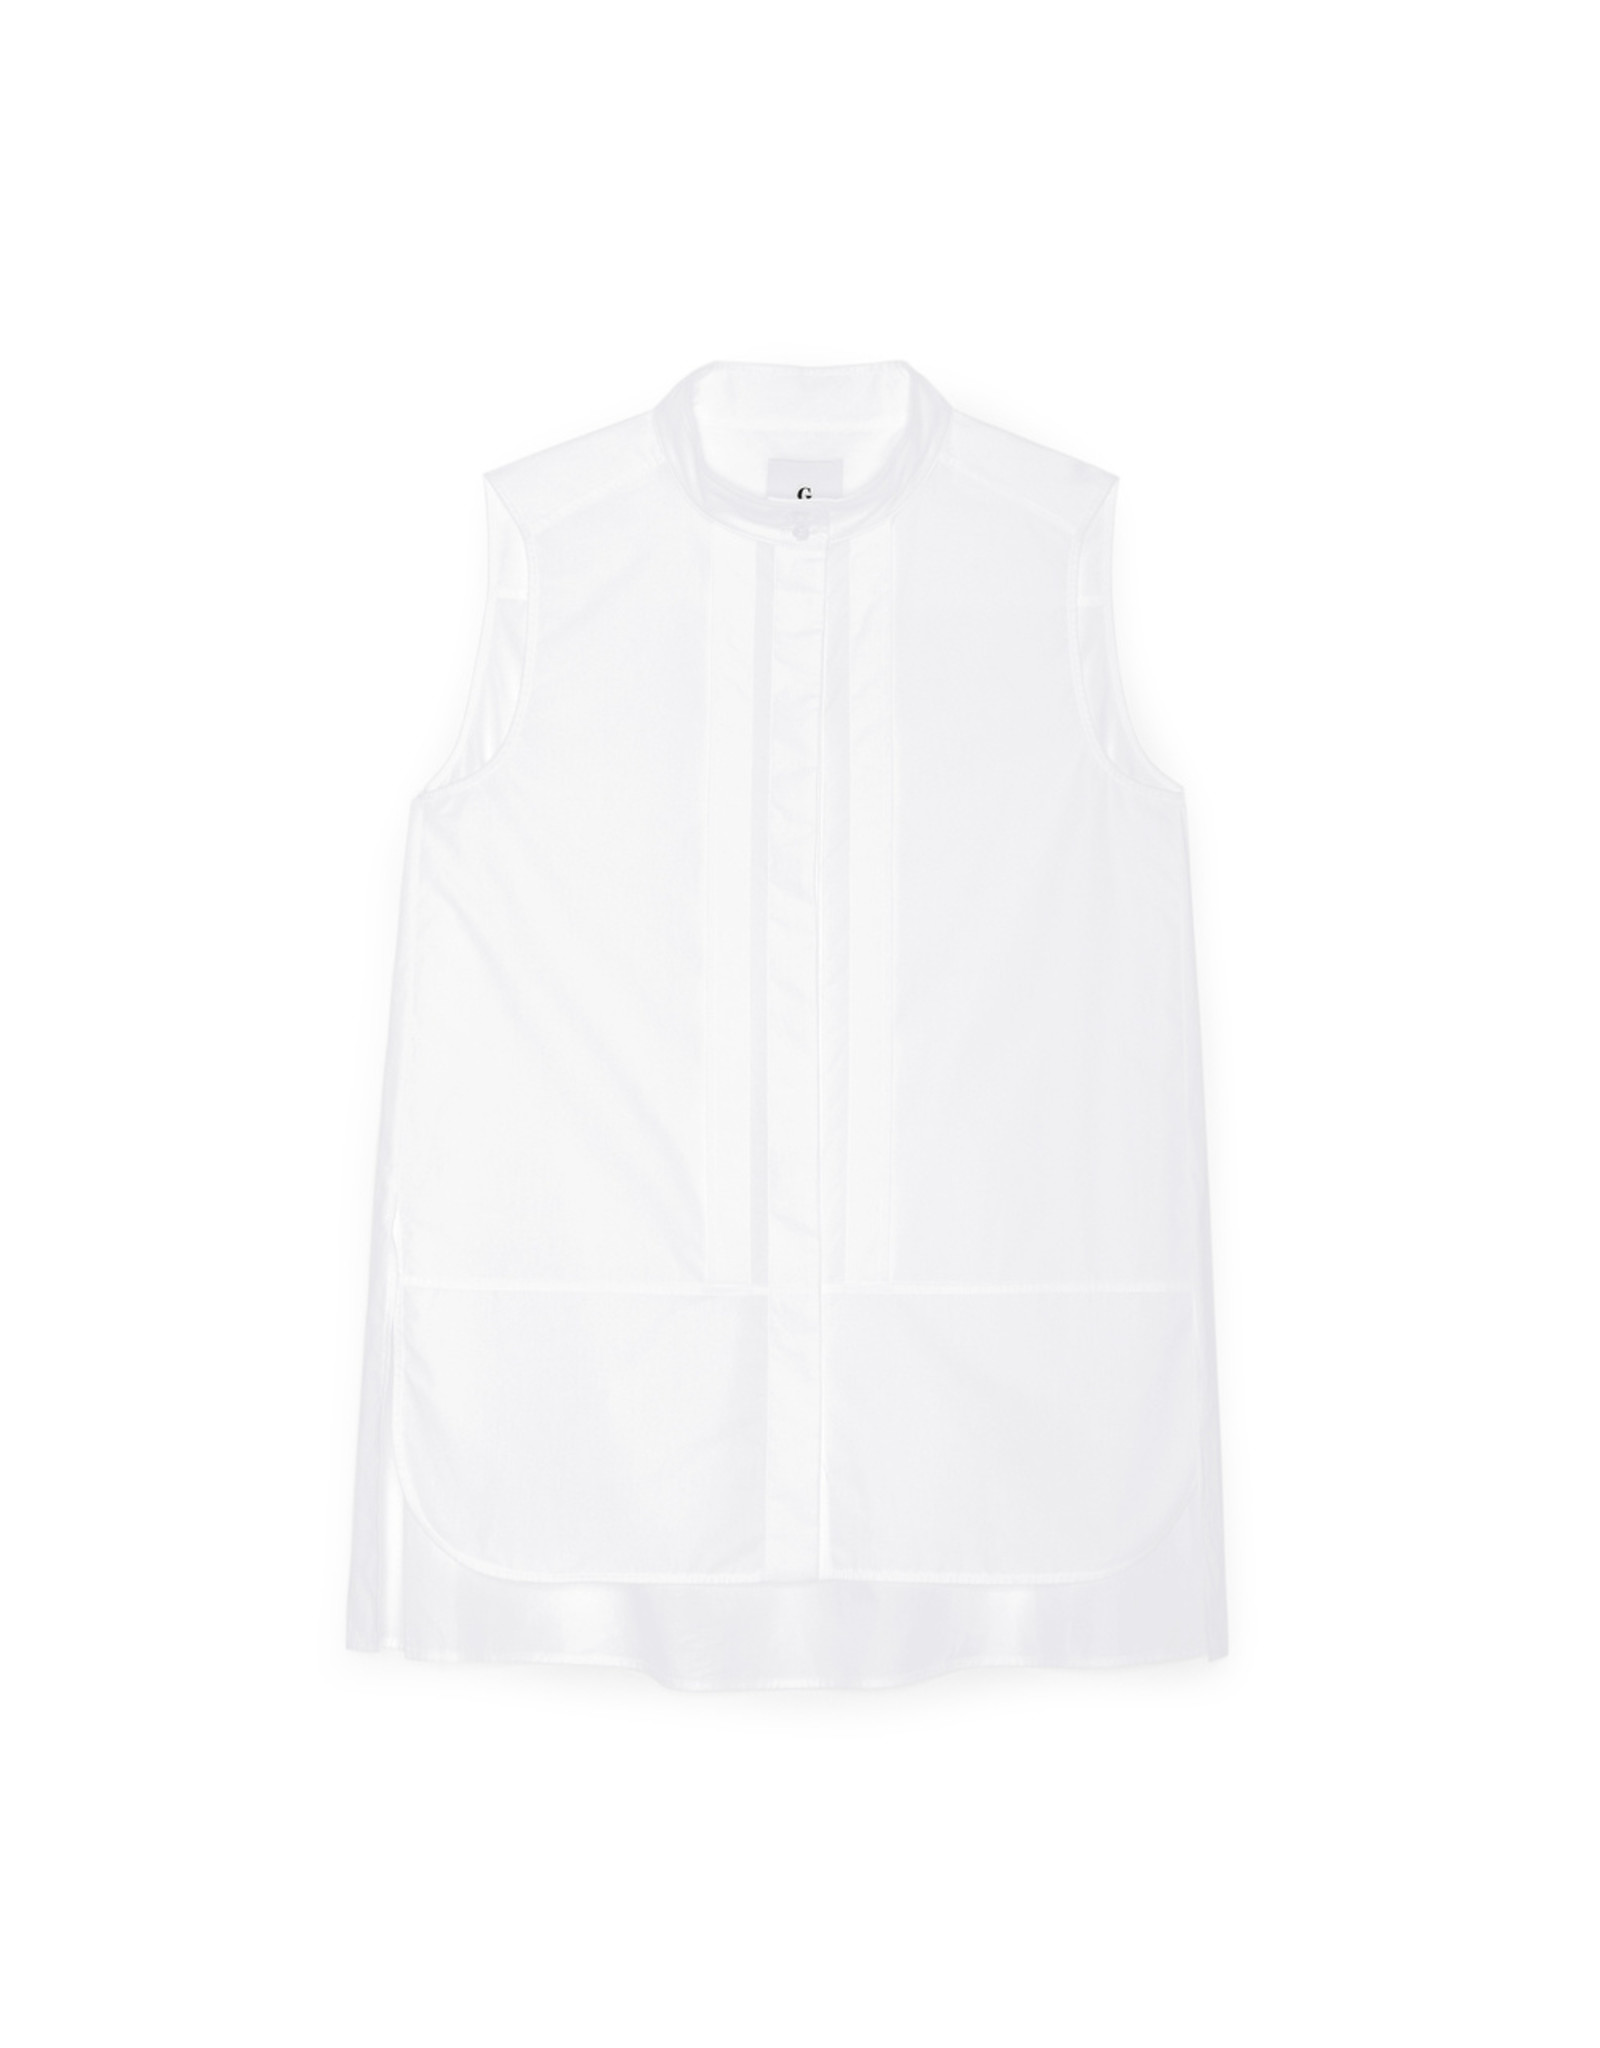 G. Label G. Label Casey Pleat Collar Shirt (Color: White, Size: 2)